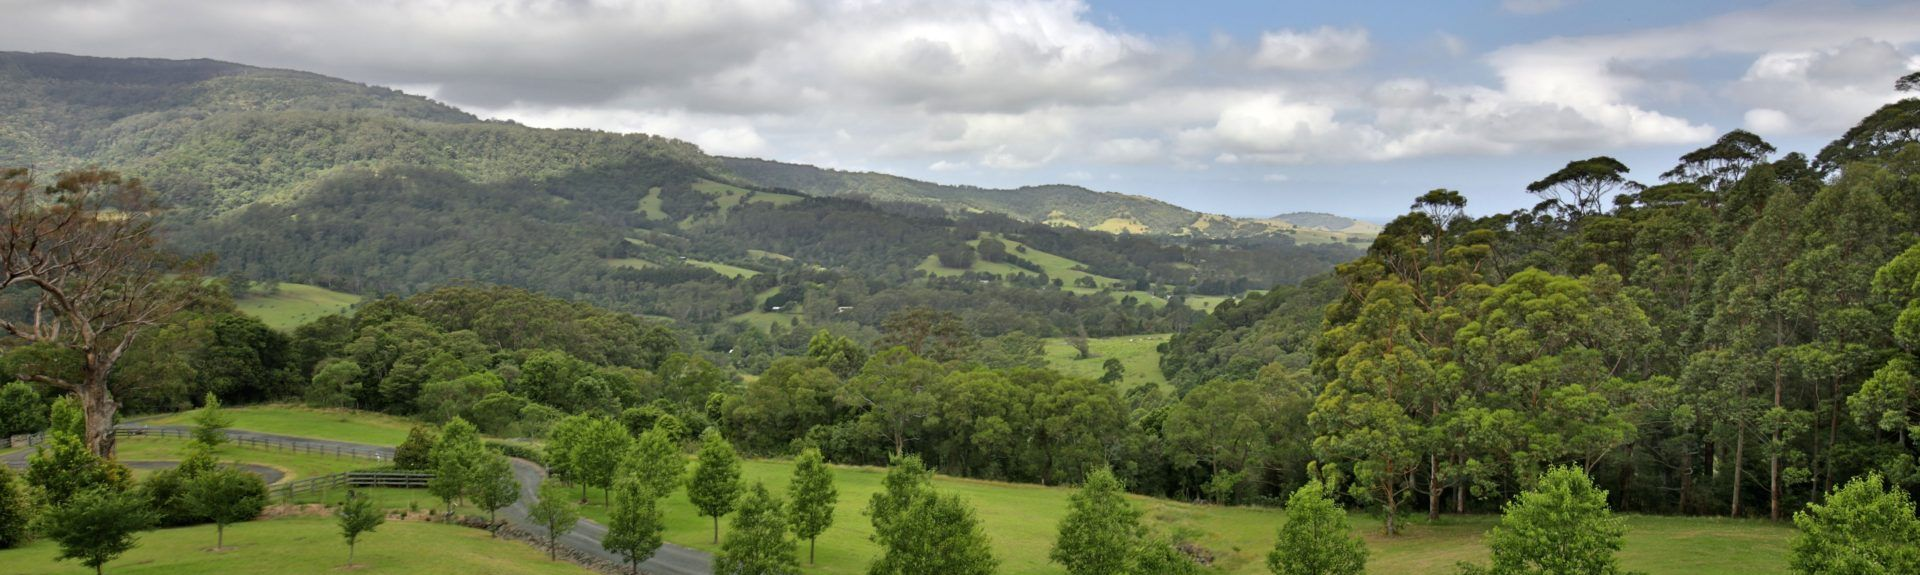 Southern Highlands, New South Wales, Australien